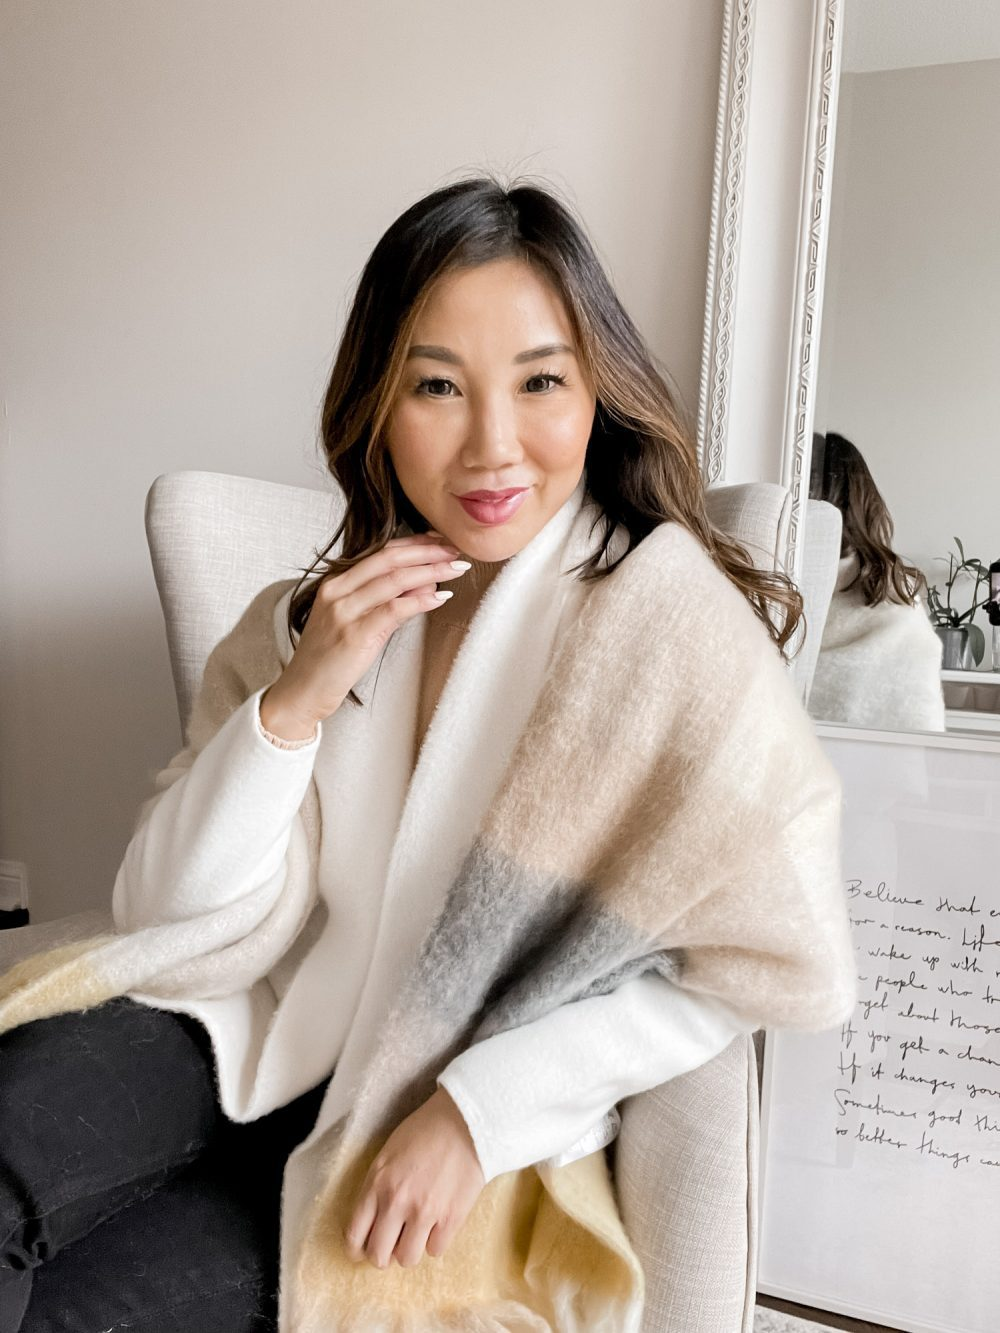 A coatigan is part coat, part cardigan and all cozy! It's the perfect wardrobe essential for fall layering! More fall style tips on yesmissy.com